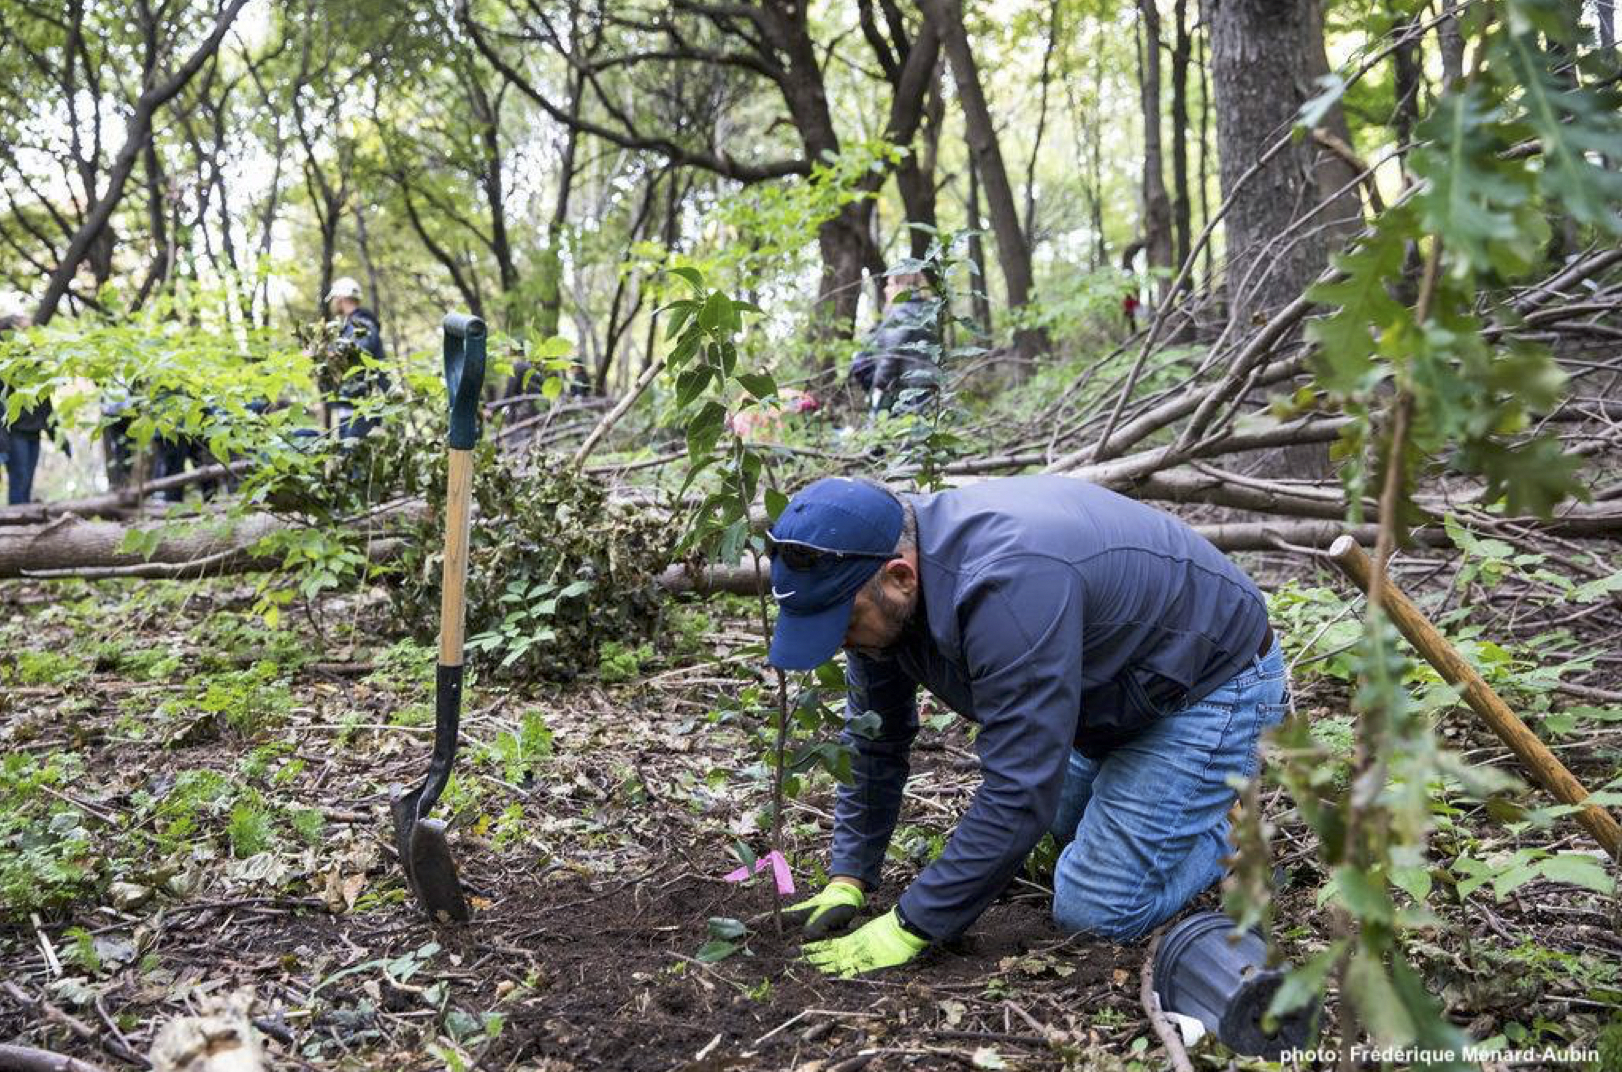 Volunteering: Managing Buckthorn and Indigenous Tree Planting